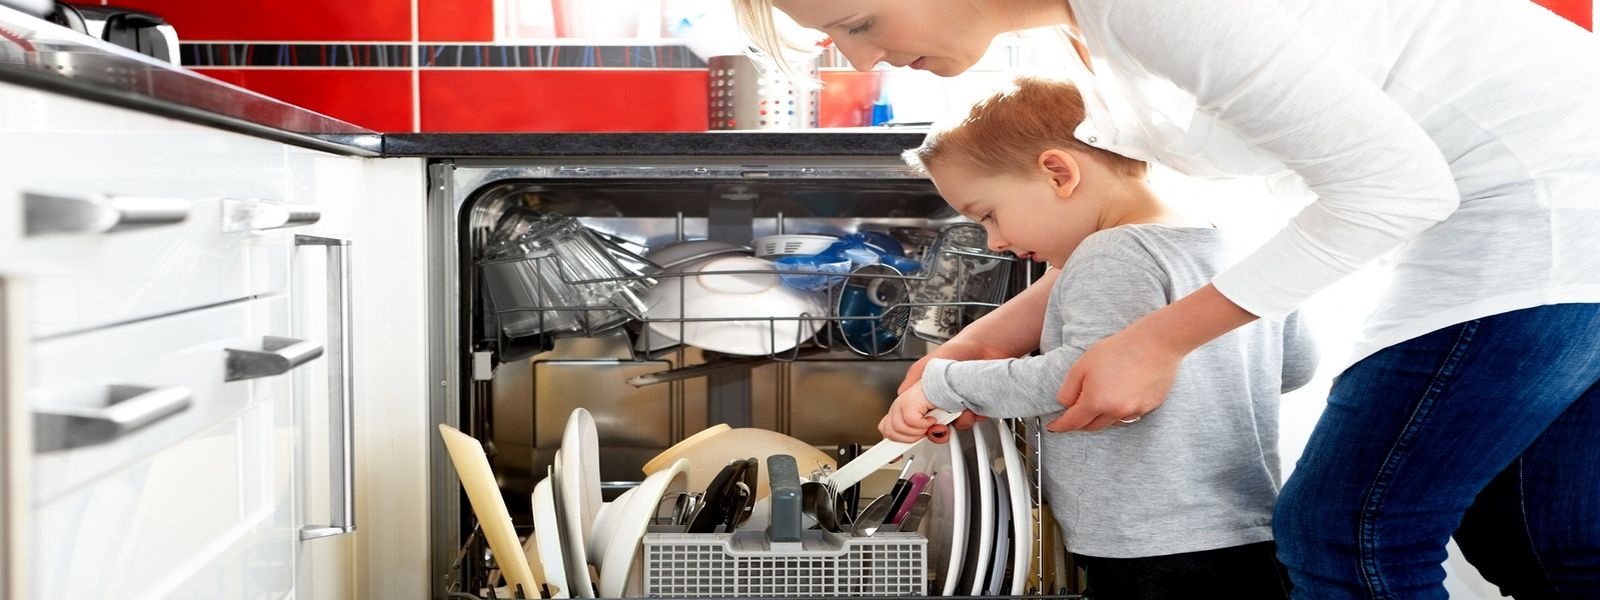 Dishwasher Repair | Appliance Doctor of Maine | Mike Davis